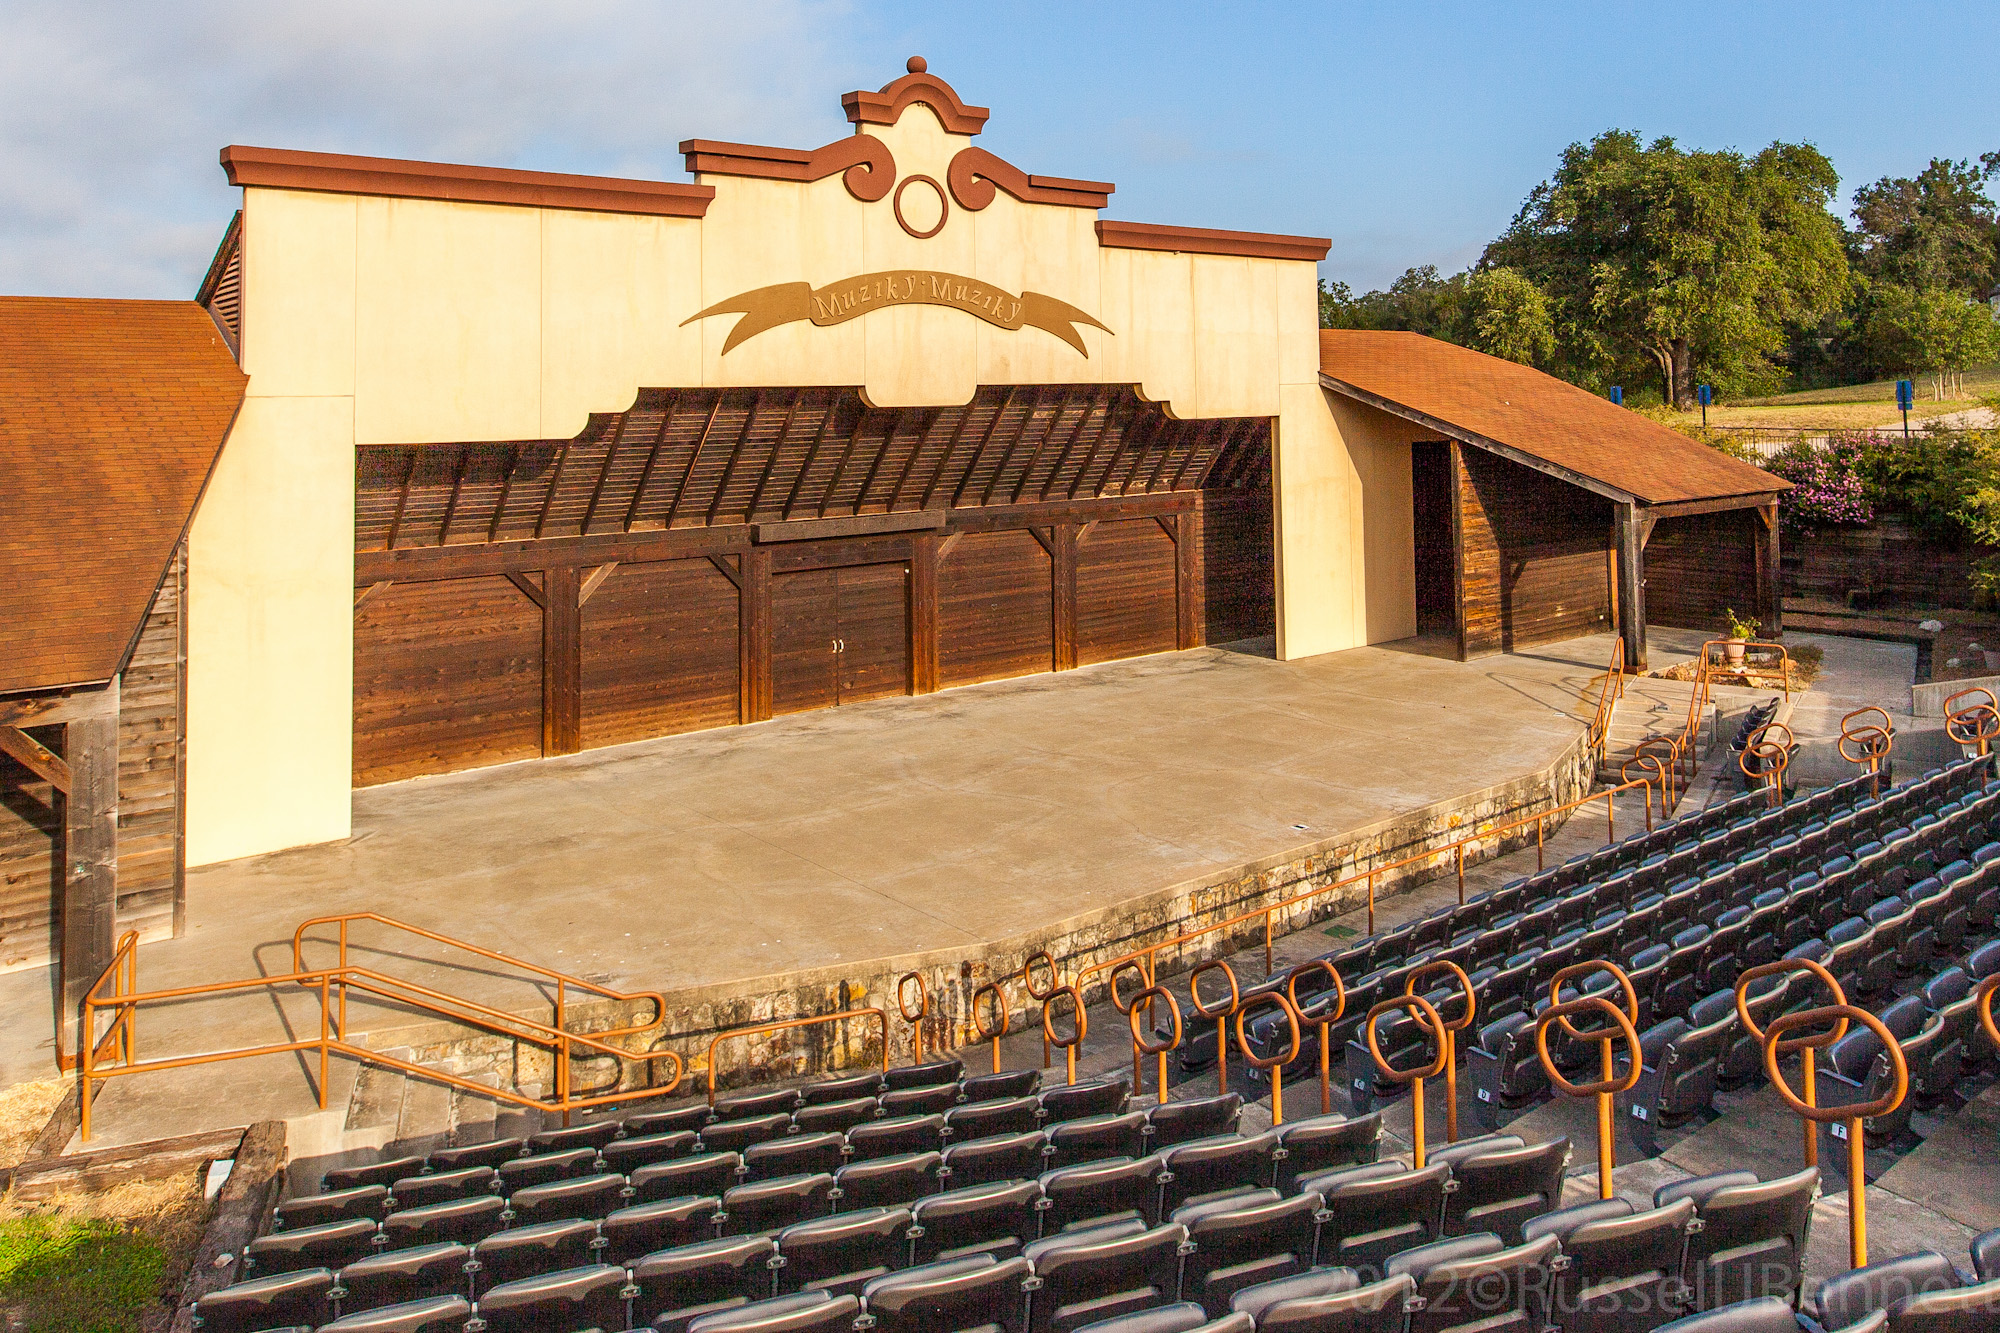 Thanks to an initial grant by the LCRA and a matching grant by La Grange resident Sanford Schmid, the amphitheater was built in 2000. The 5,500-square-foot facility is built in a Texas Czech style and includes an open stage, dressing/meeting rooms, restrooms, and prop storage area. Music is very special in the life of Czechs. The Czech saying  Muziky, Muziky  (Music, Music) adorns the top of the stage. The facility is available for rent and used for musical performances, theatrical plays, presentations, and outdoor weddings.  Muziky, Muziky  performances are part of the Czech Heritage Festival held each October.